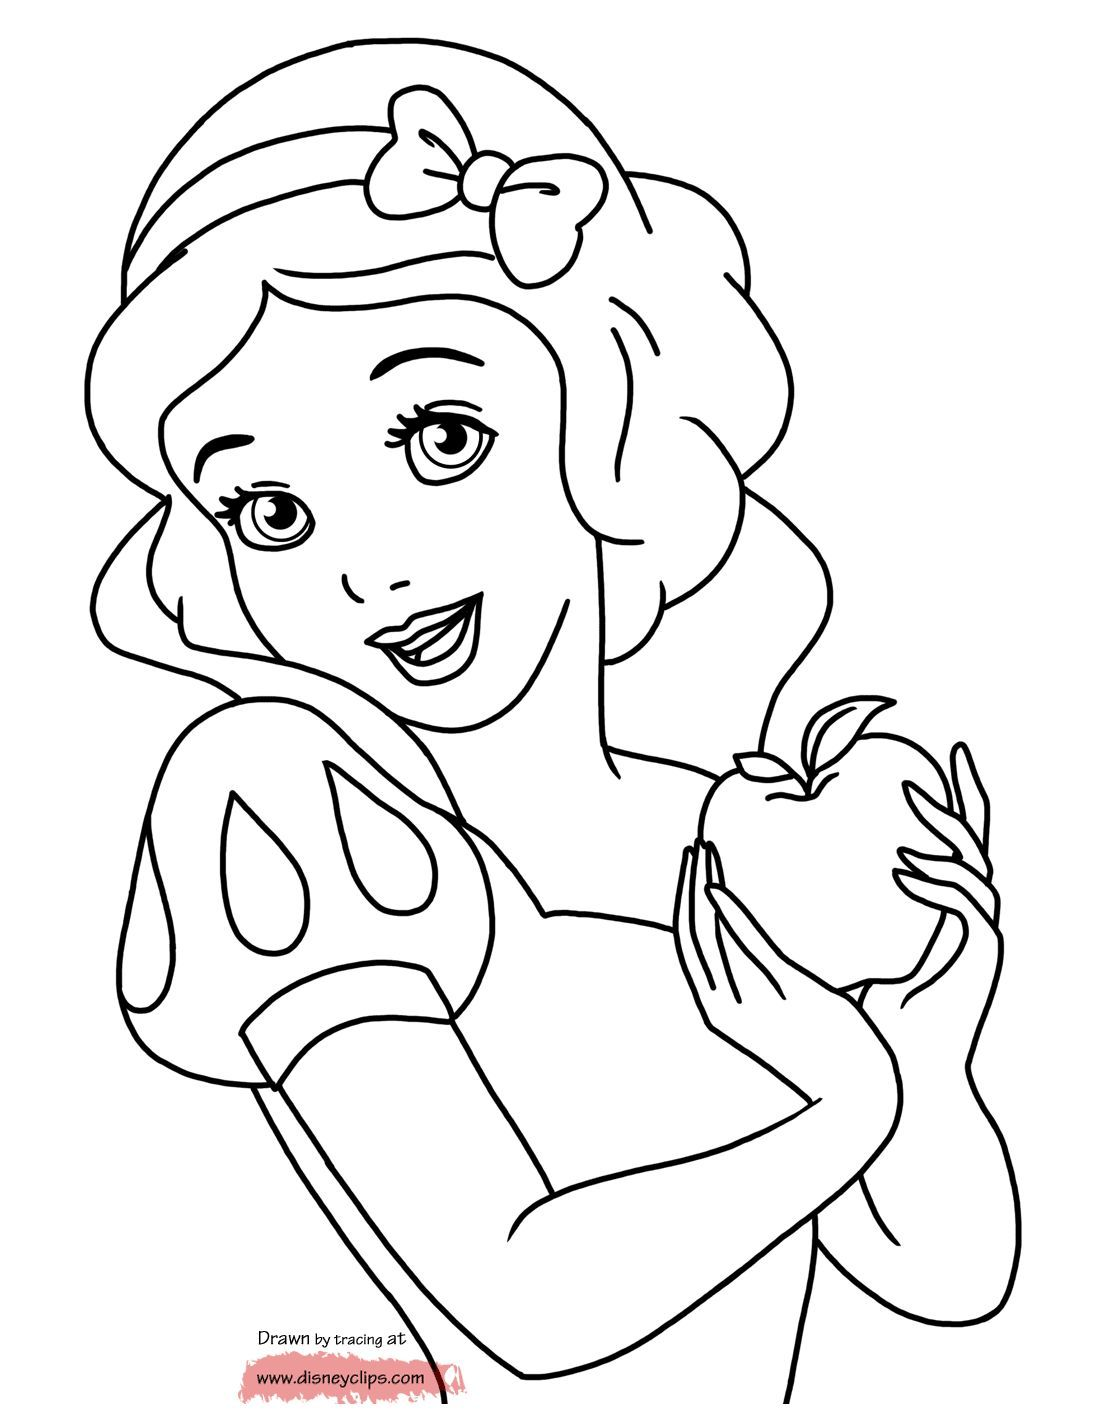 Pin De Kaylie Dallas Em Coloring Pages